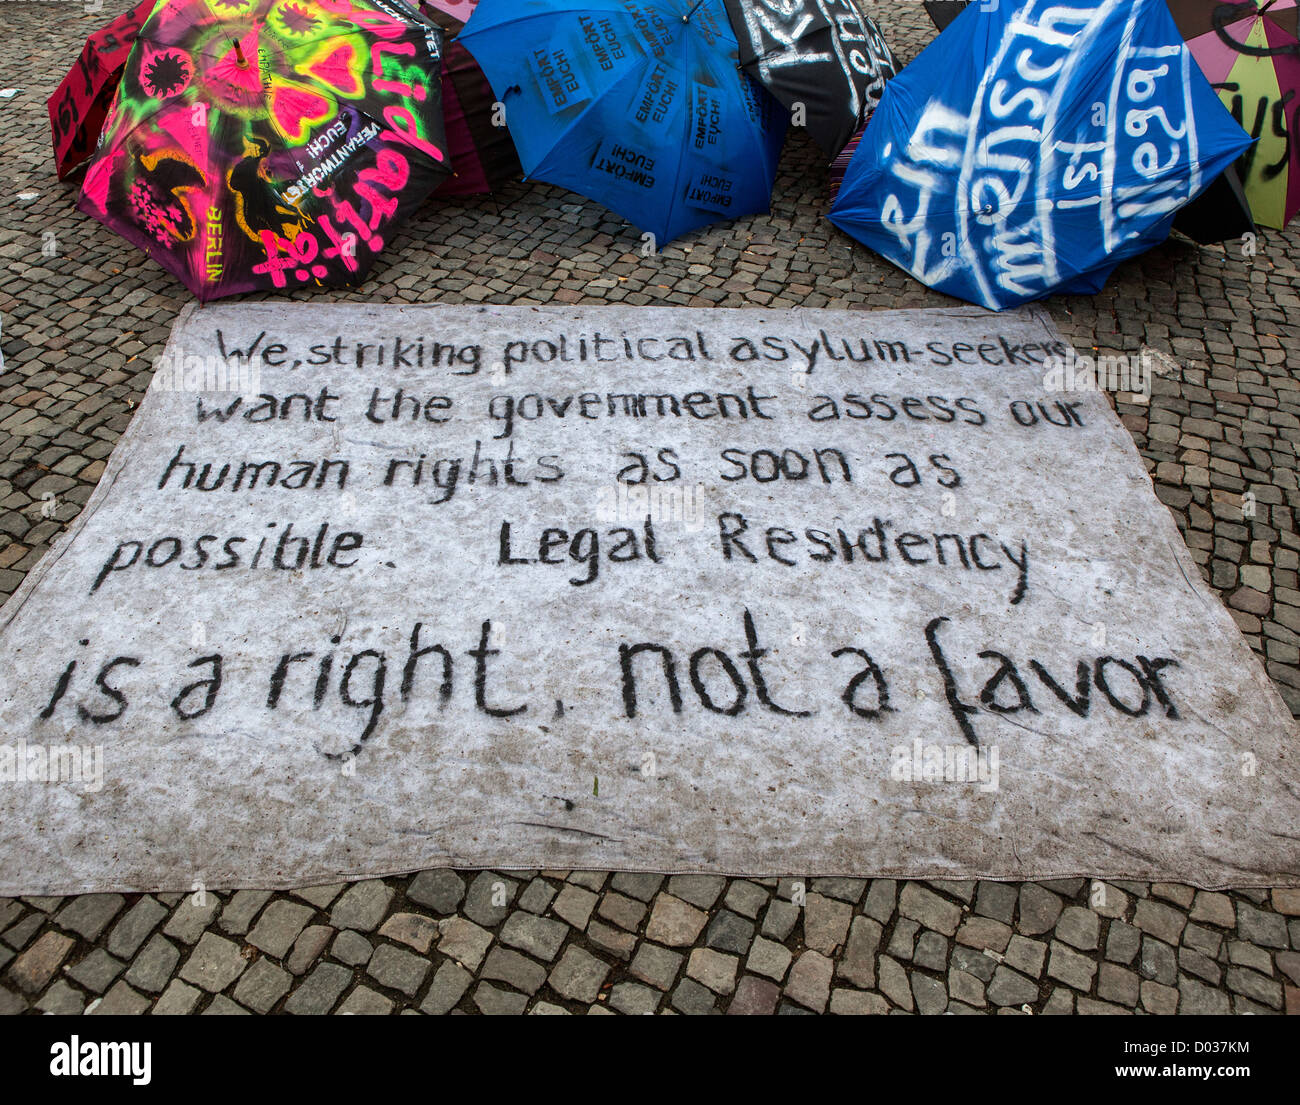 Slogans of Asylum seekers protesting against deportation, poor living conditions and slow processing of residency - Stock Image